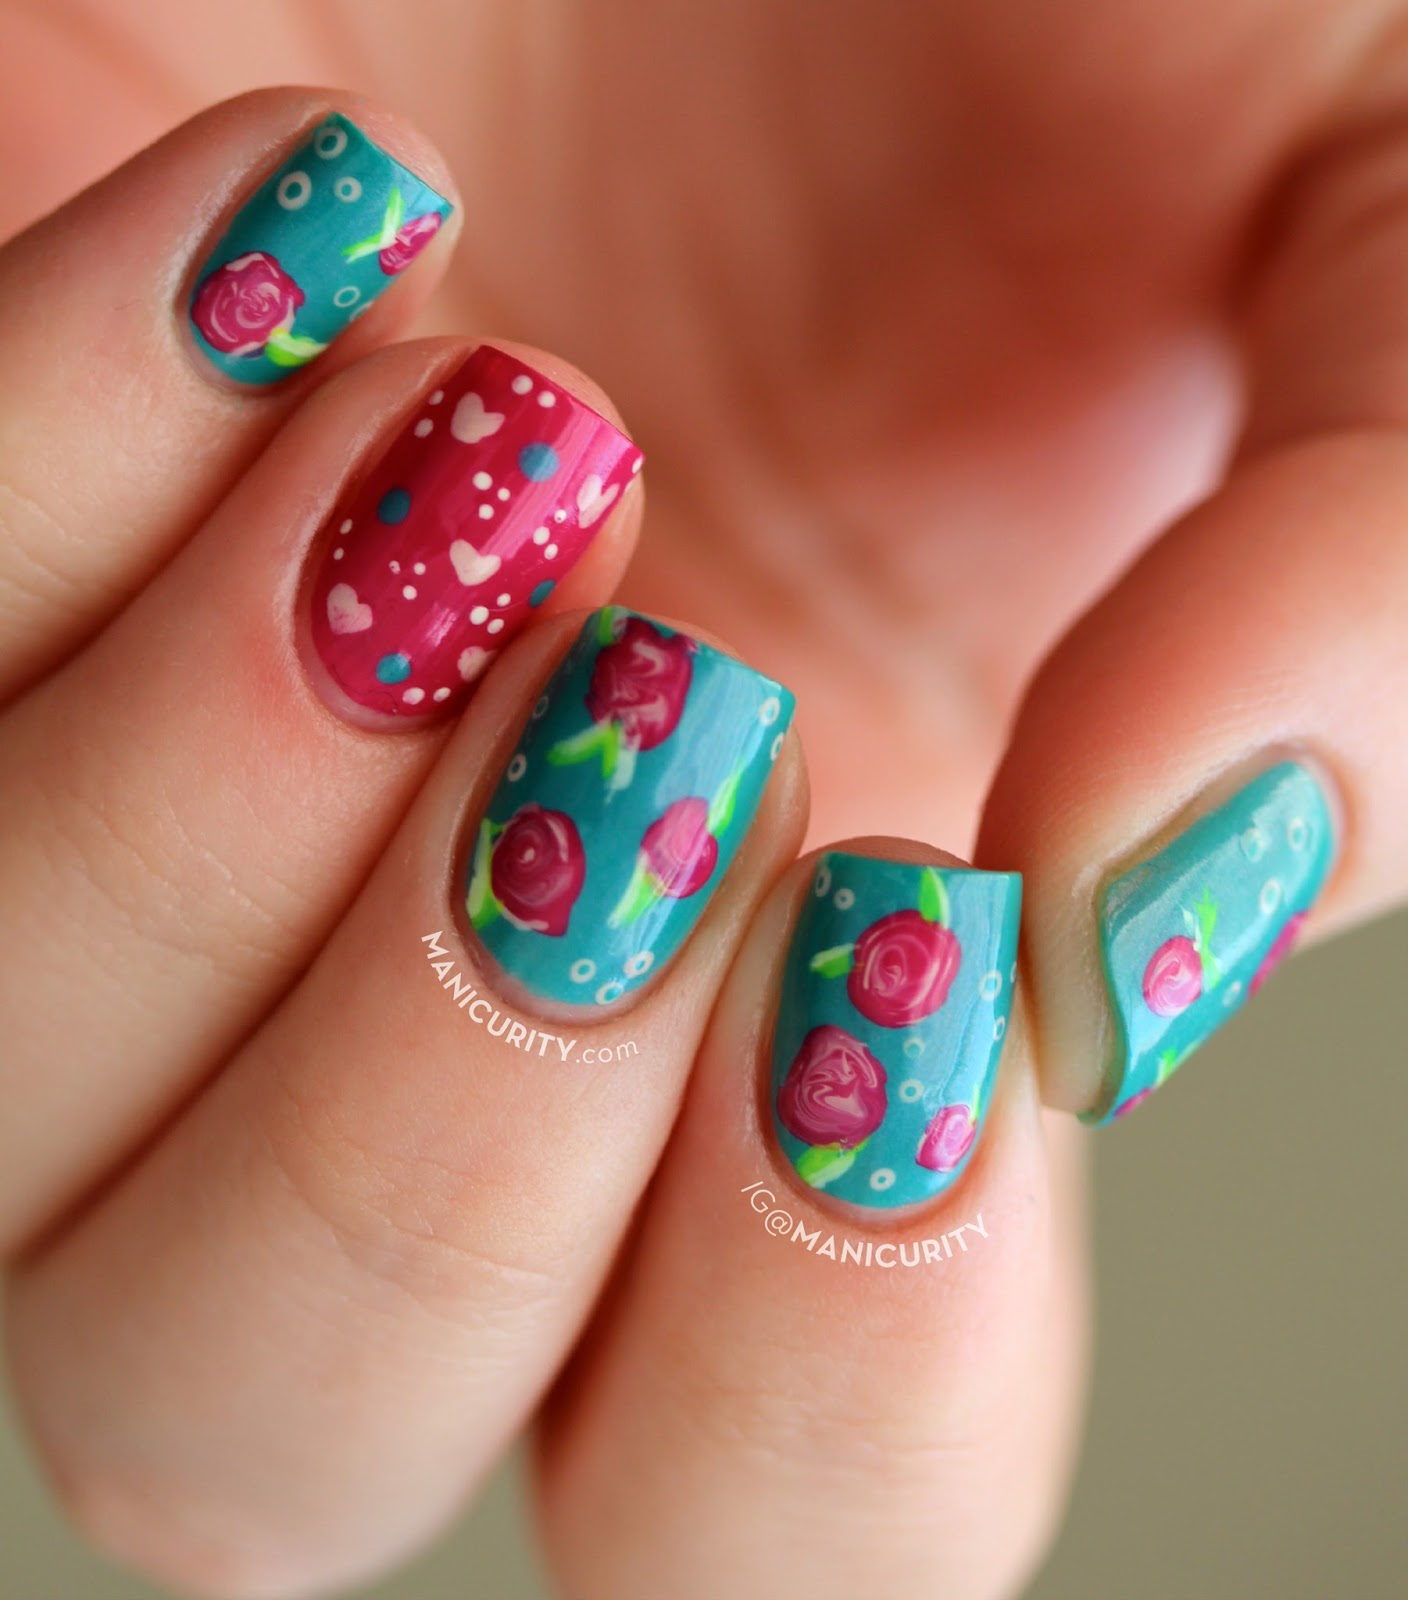 The Digit-al Dozen does Vintage: Contemporary Vibrant Rosebud Skittles - fun nail art idea for short, nubbin nails! | Manicurity.com